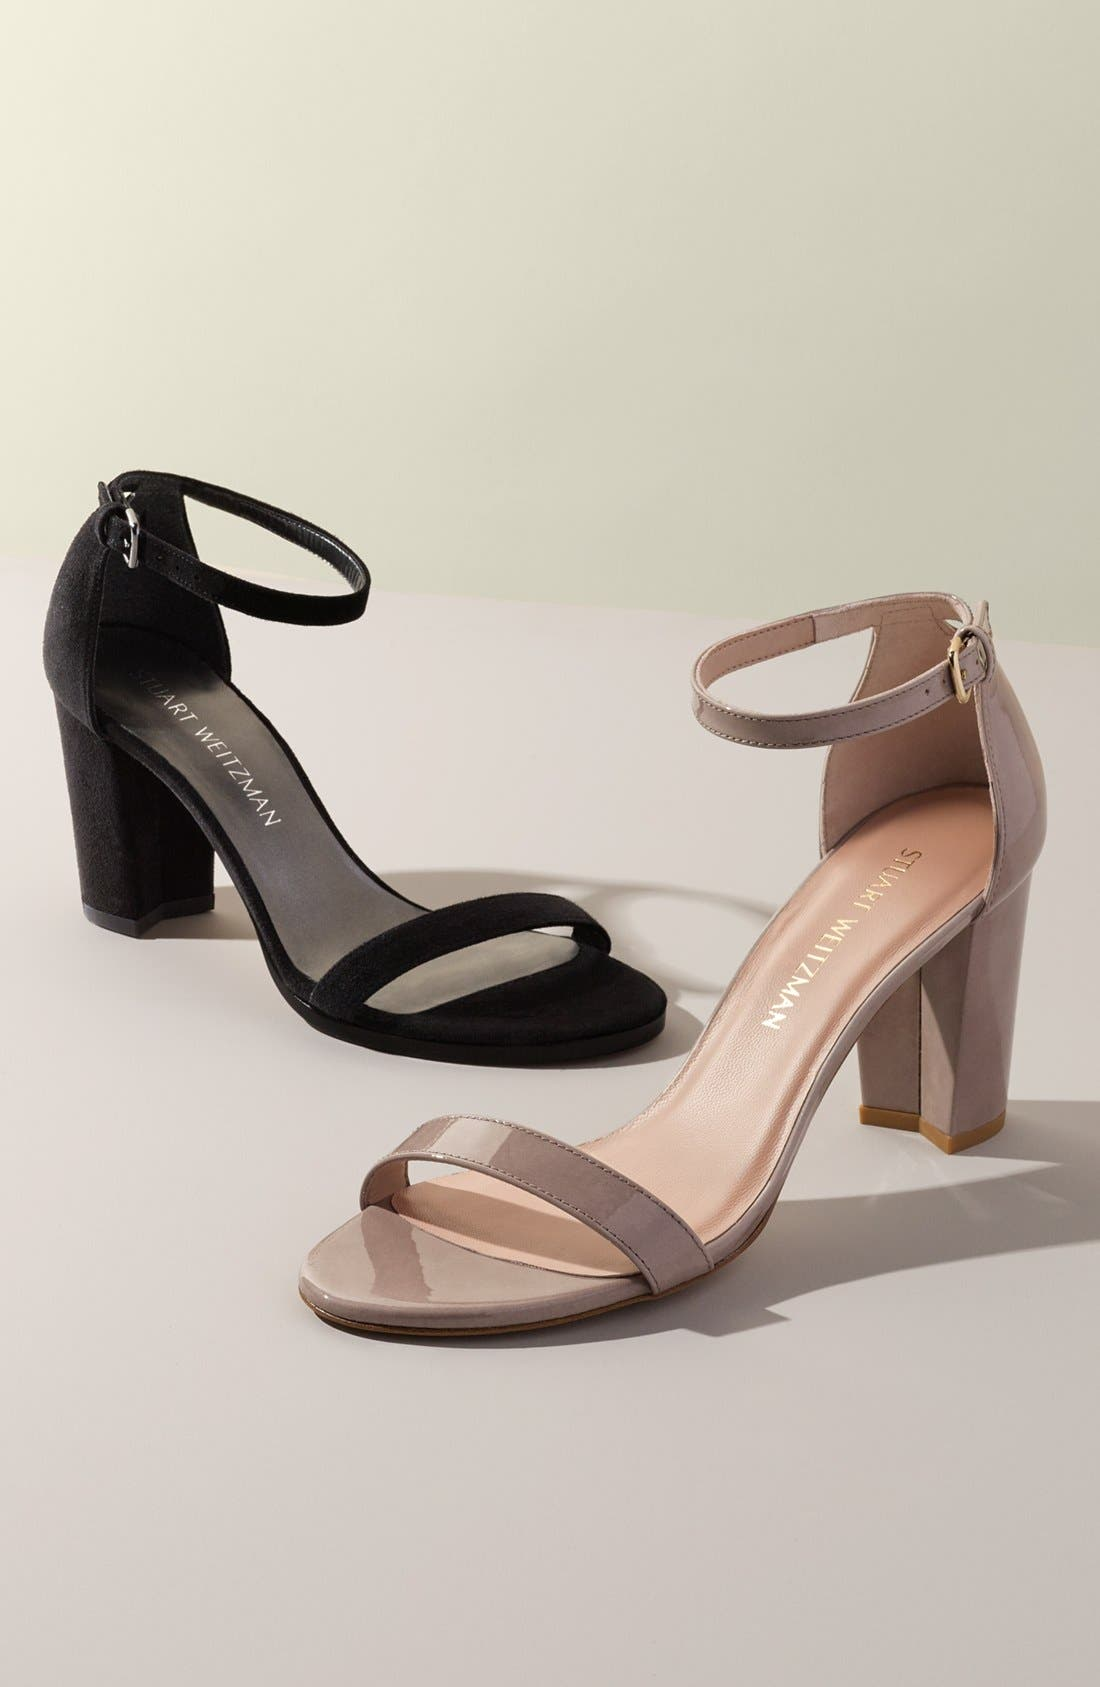 NearlyNude Ankle Strap Sandal,                             Alternate thumbnail 9, color,                             ADOBE ANILINE